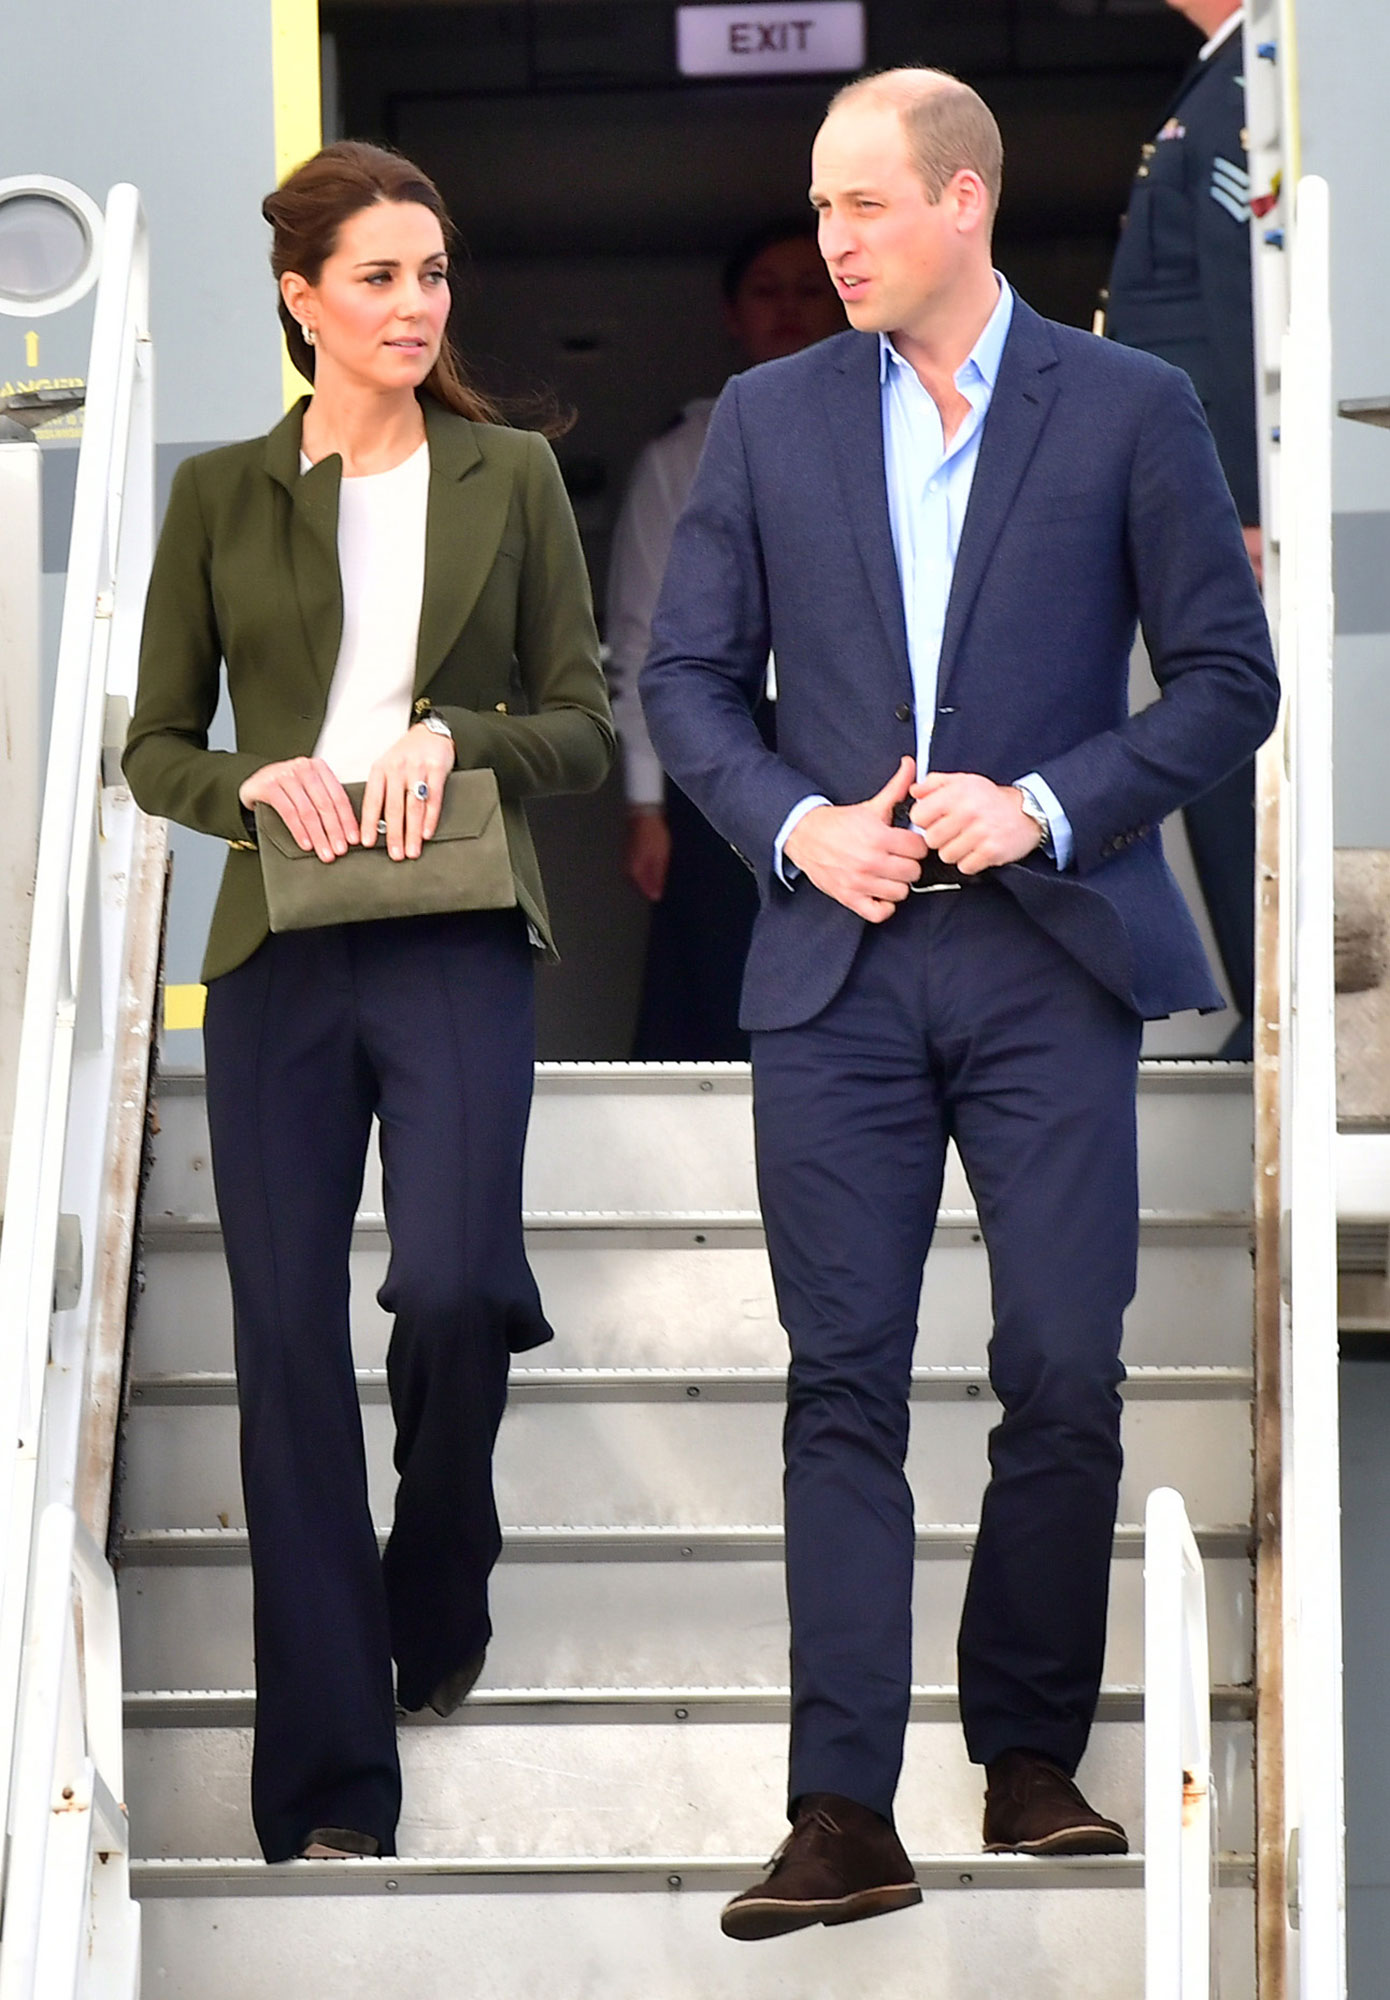 kate middleton wears pants and blazer like meghan people com https people com royals kate middleton wears wide legged pants blazer like meghan markle royal rewear